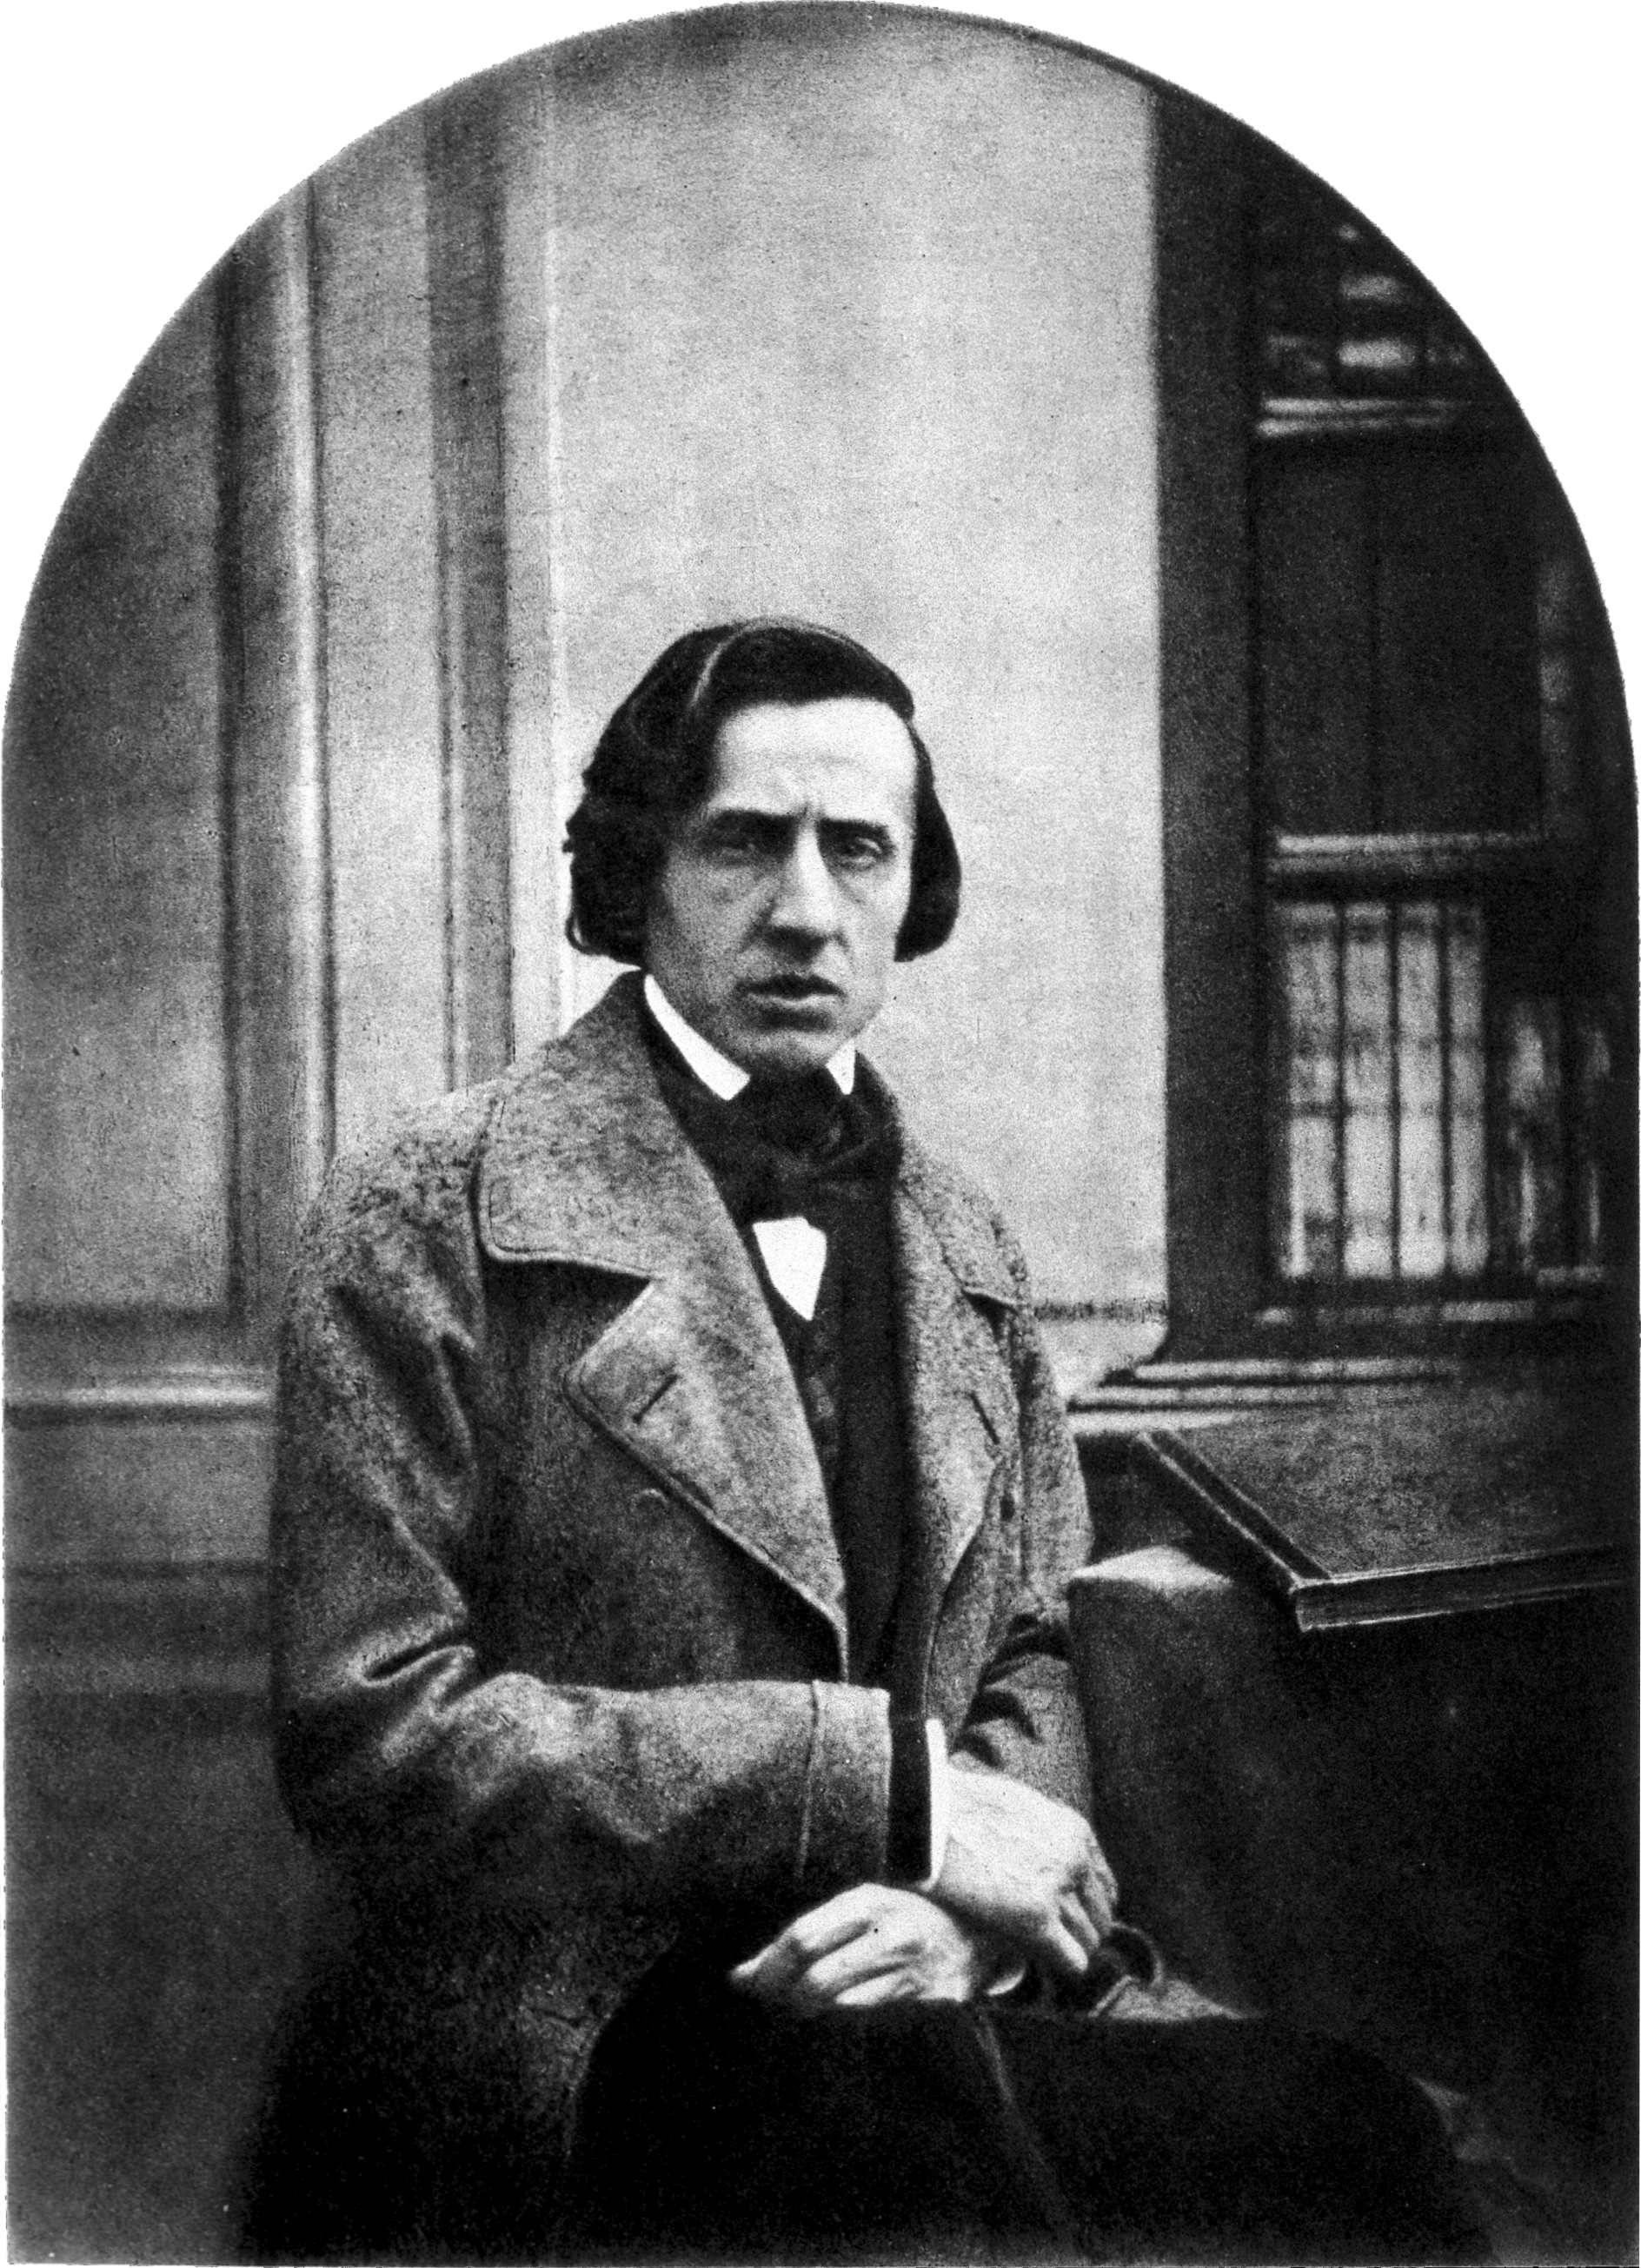 Frédéric Chopin, probably 1849, age 39. Daguerréotype by Louis-Auguste Bisson [1890 x 2613]